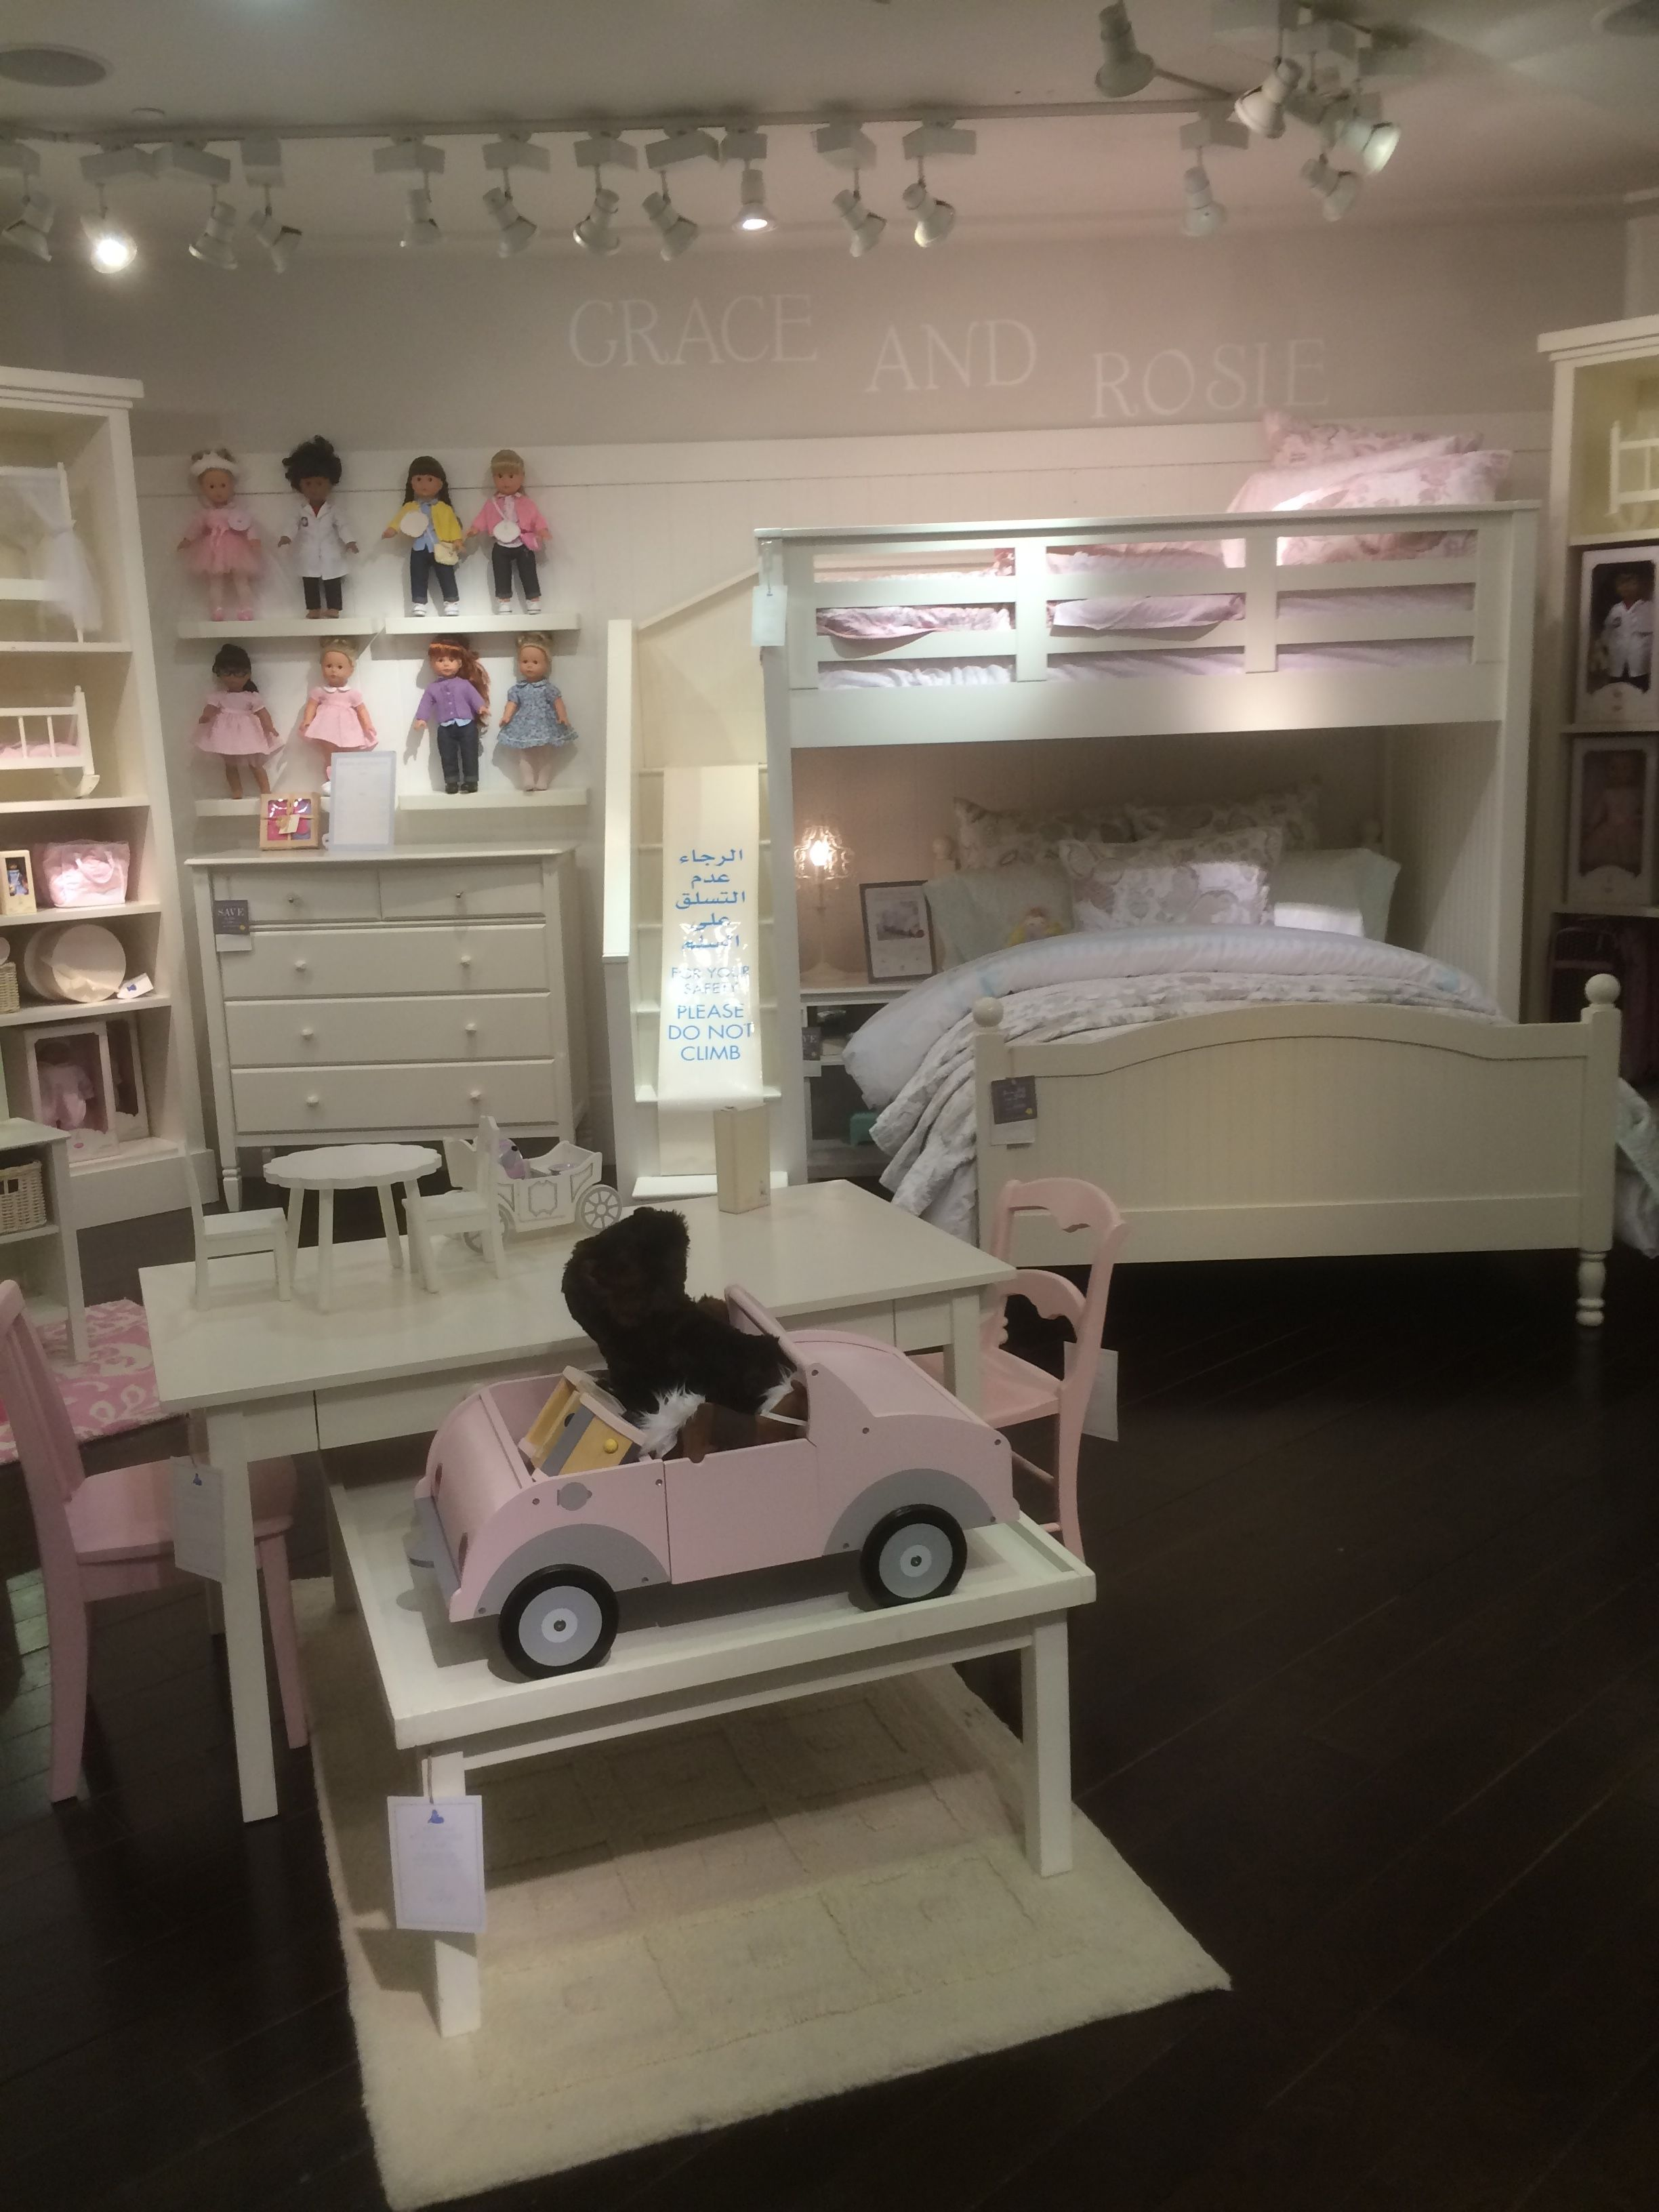 Pottery barn kids camp bed - Pottery Barn Kids Uae Dubai Mall Dubai Homewares Kids Lifestyle